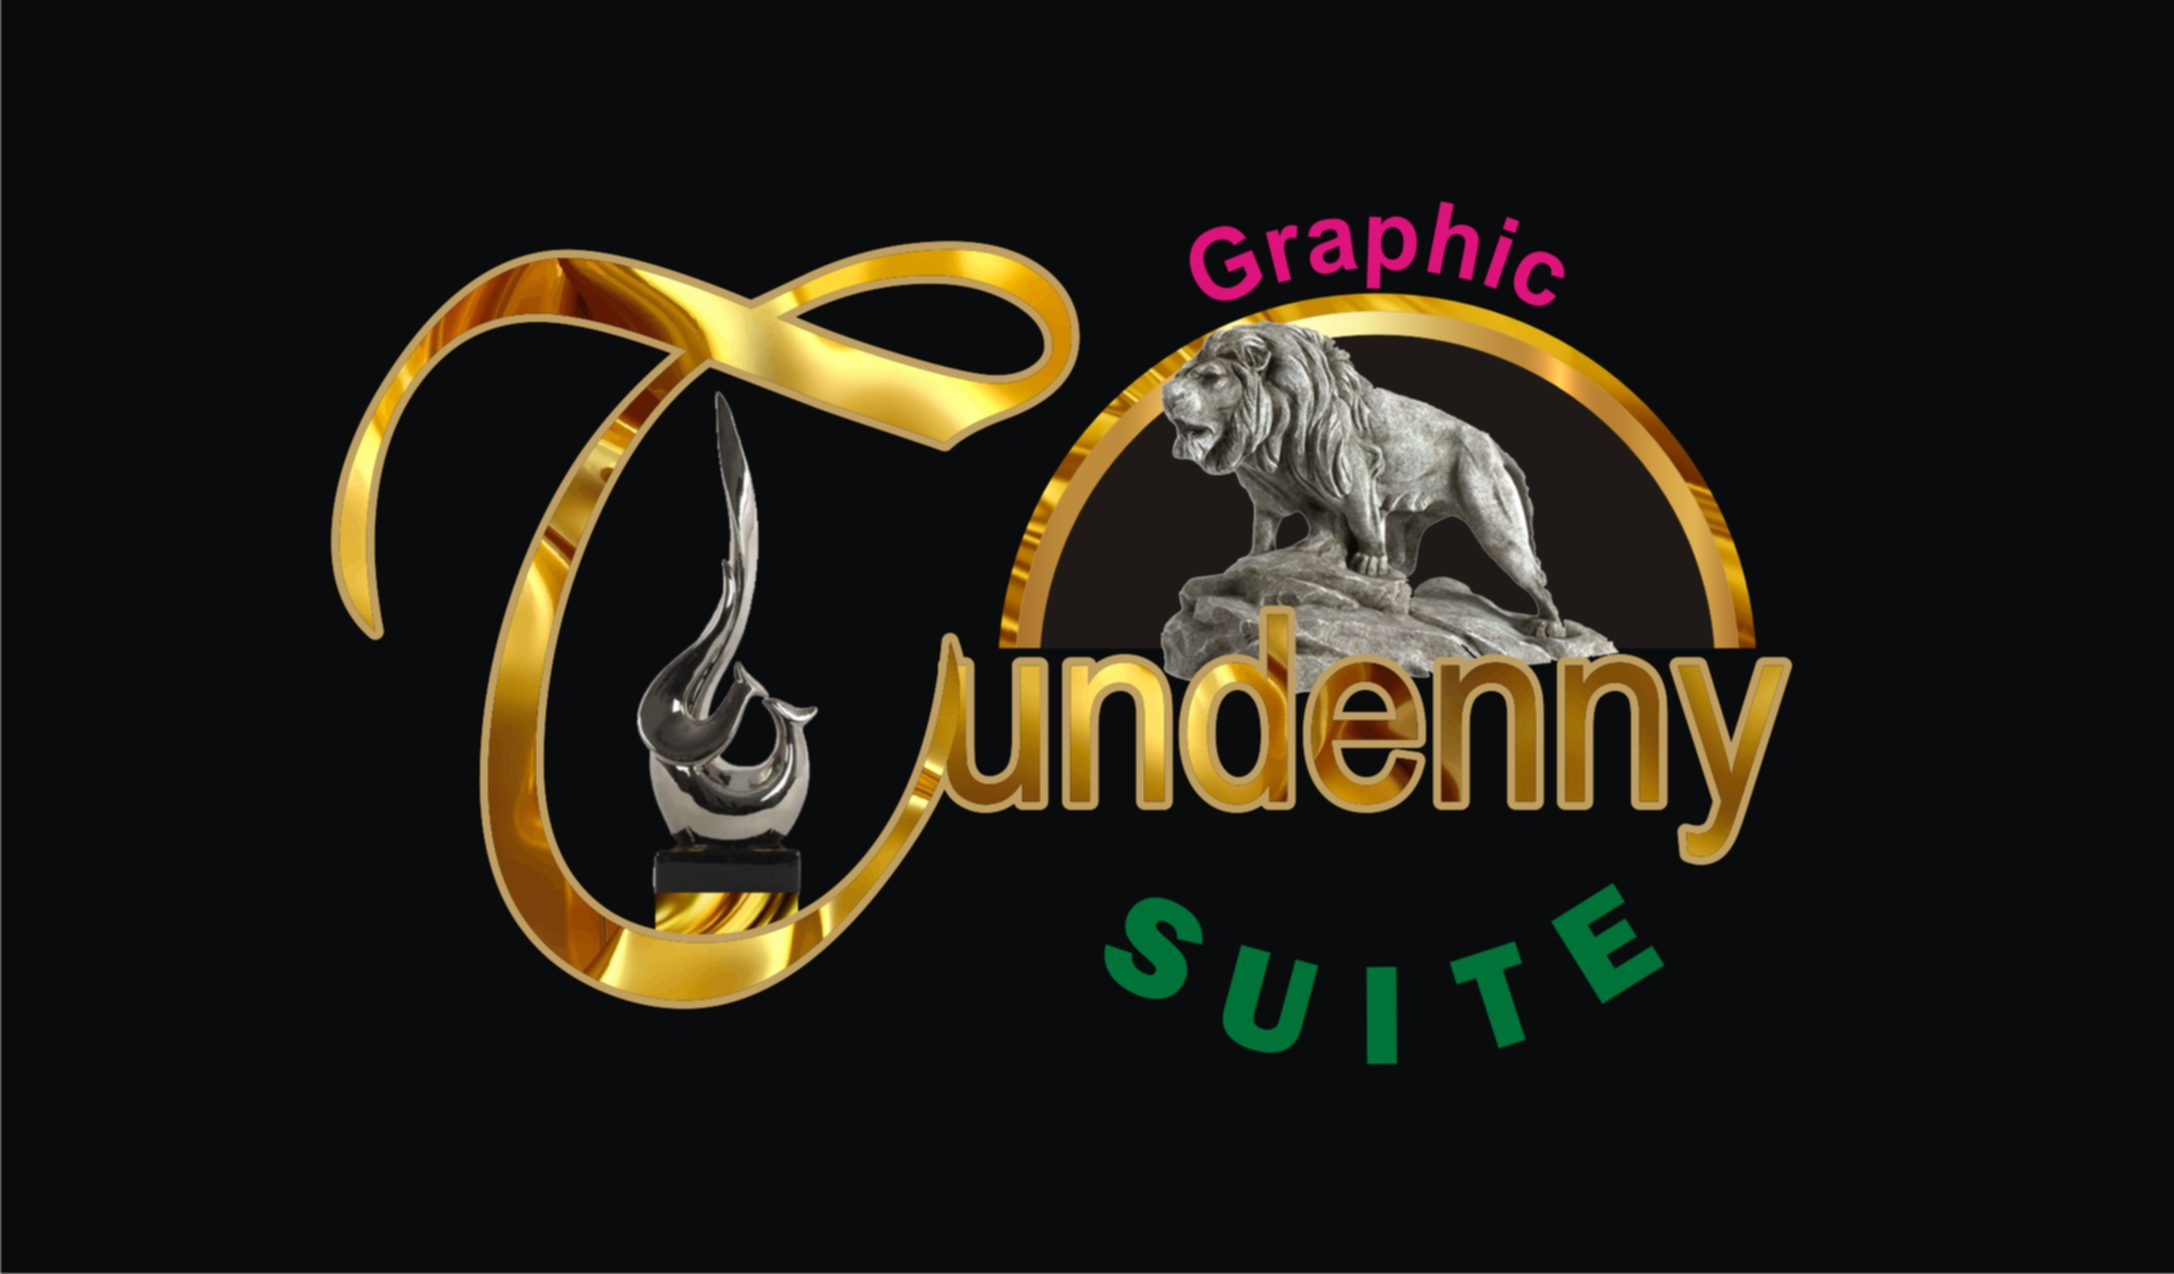 Tundenny Graphic Suite